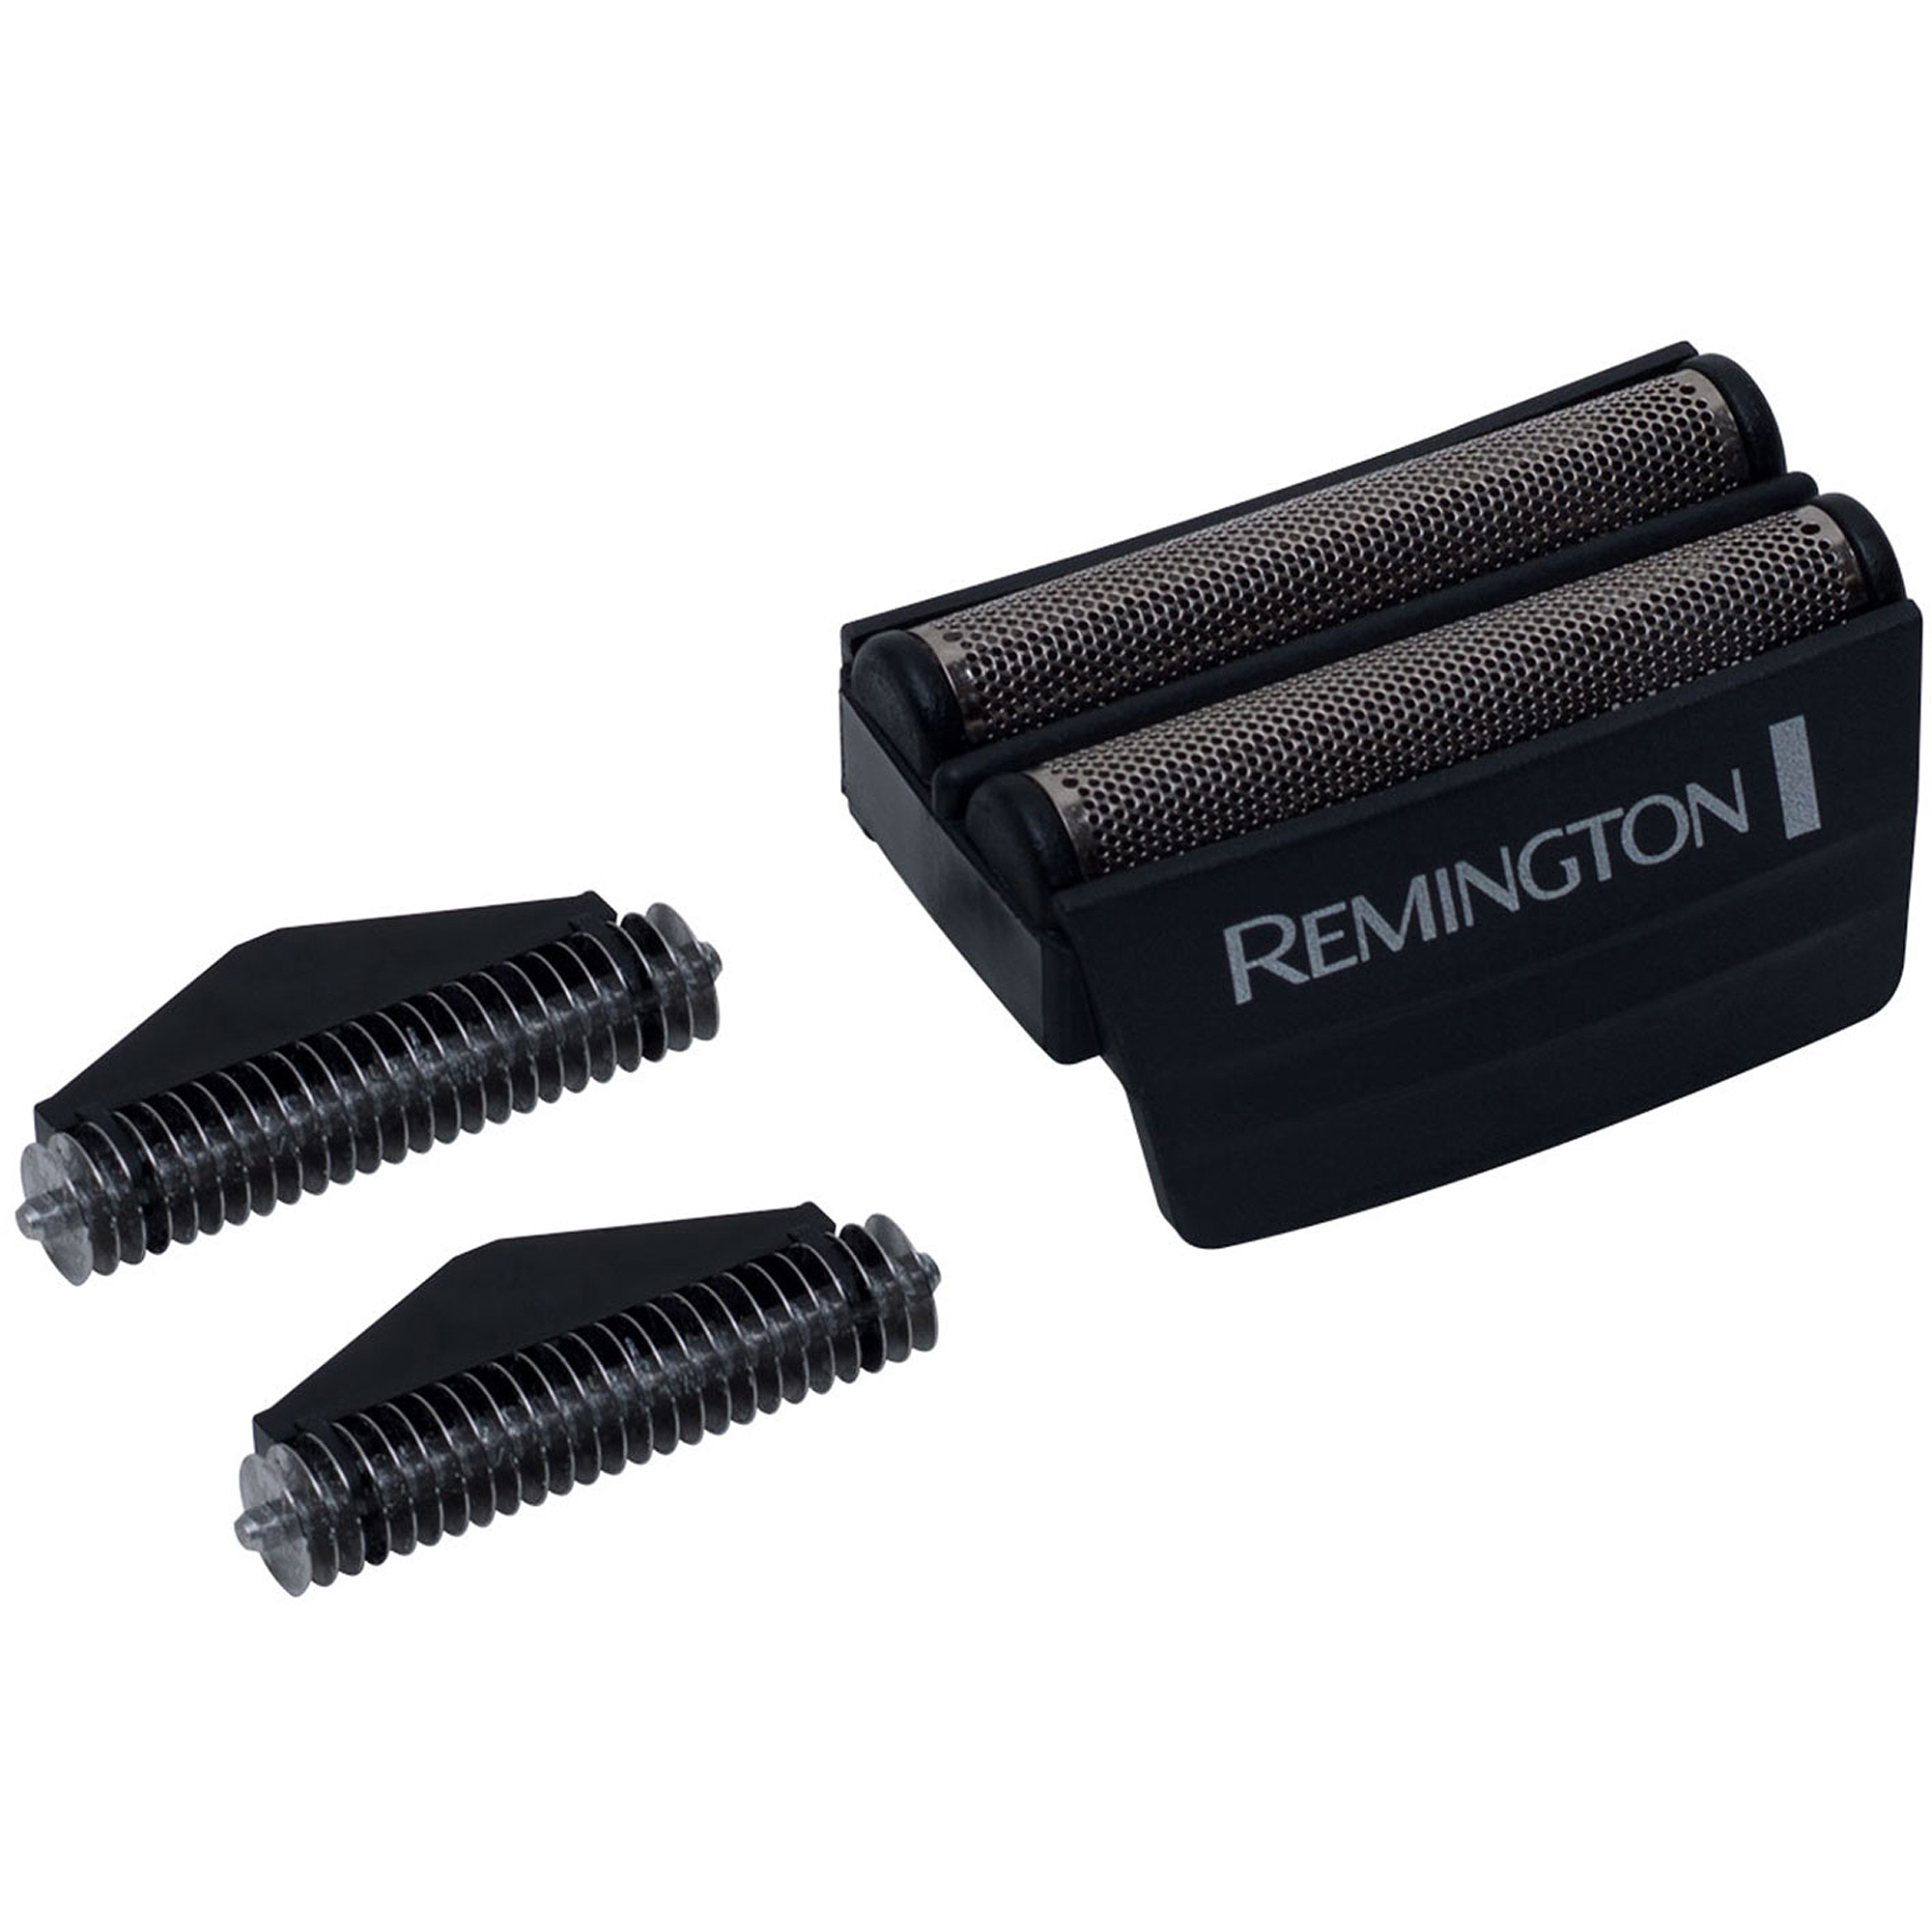 Remington SPF-200 Foil & Cutter Replacement Part for F4800 Foil Shavers